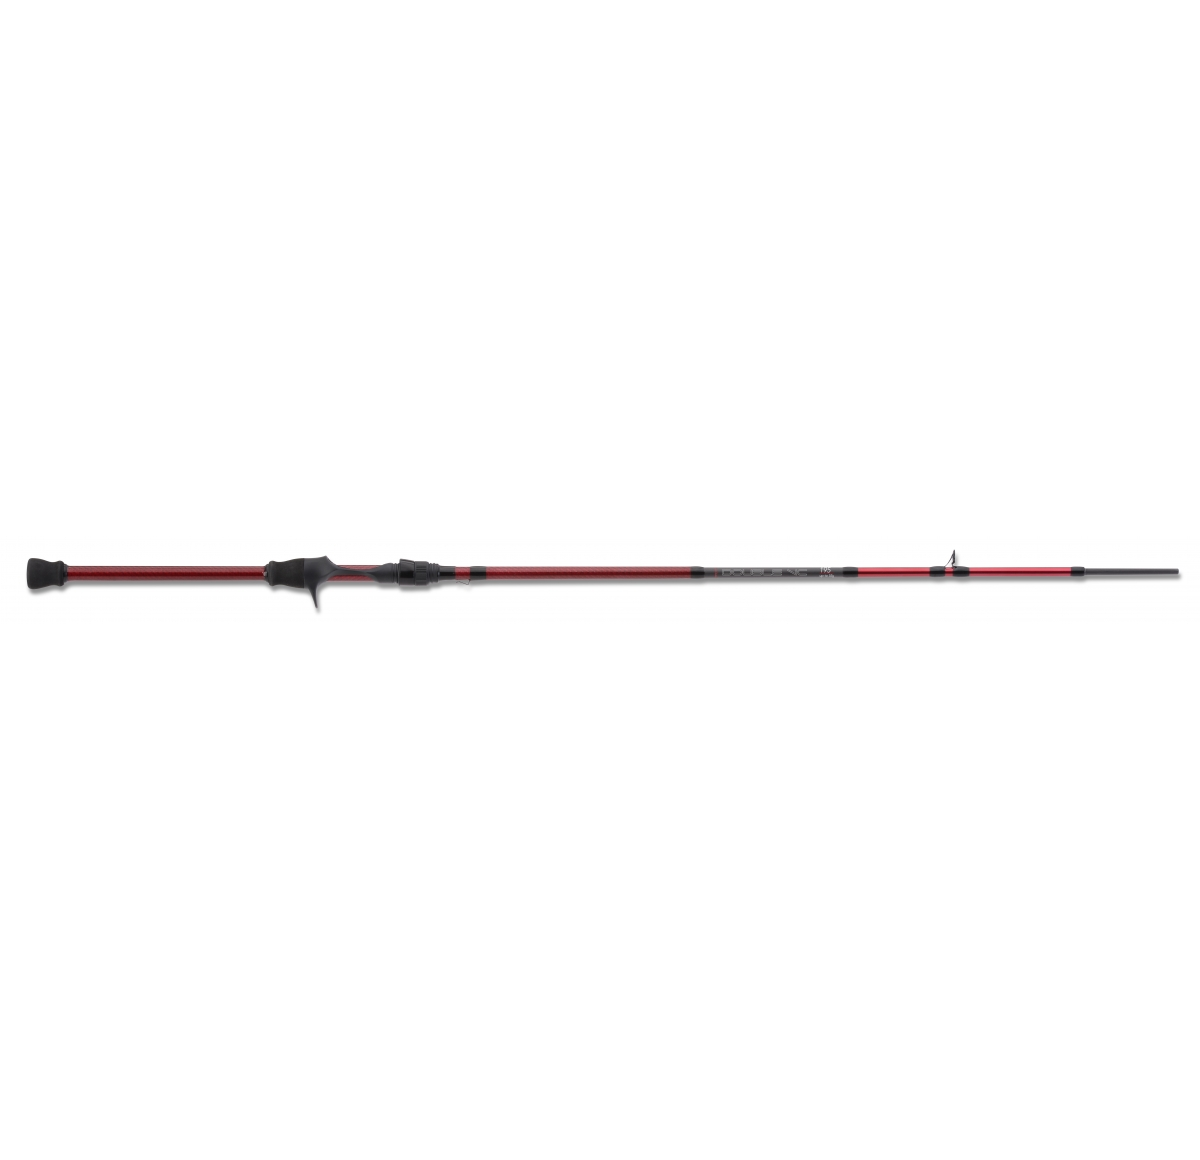 Iron Claw Double VC 195 cm 55 g